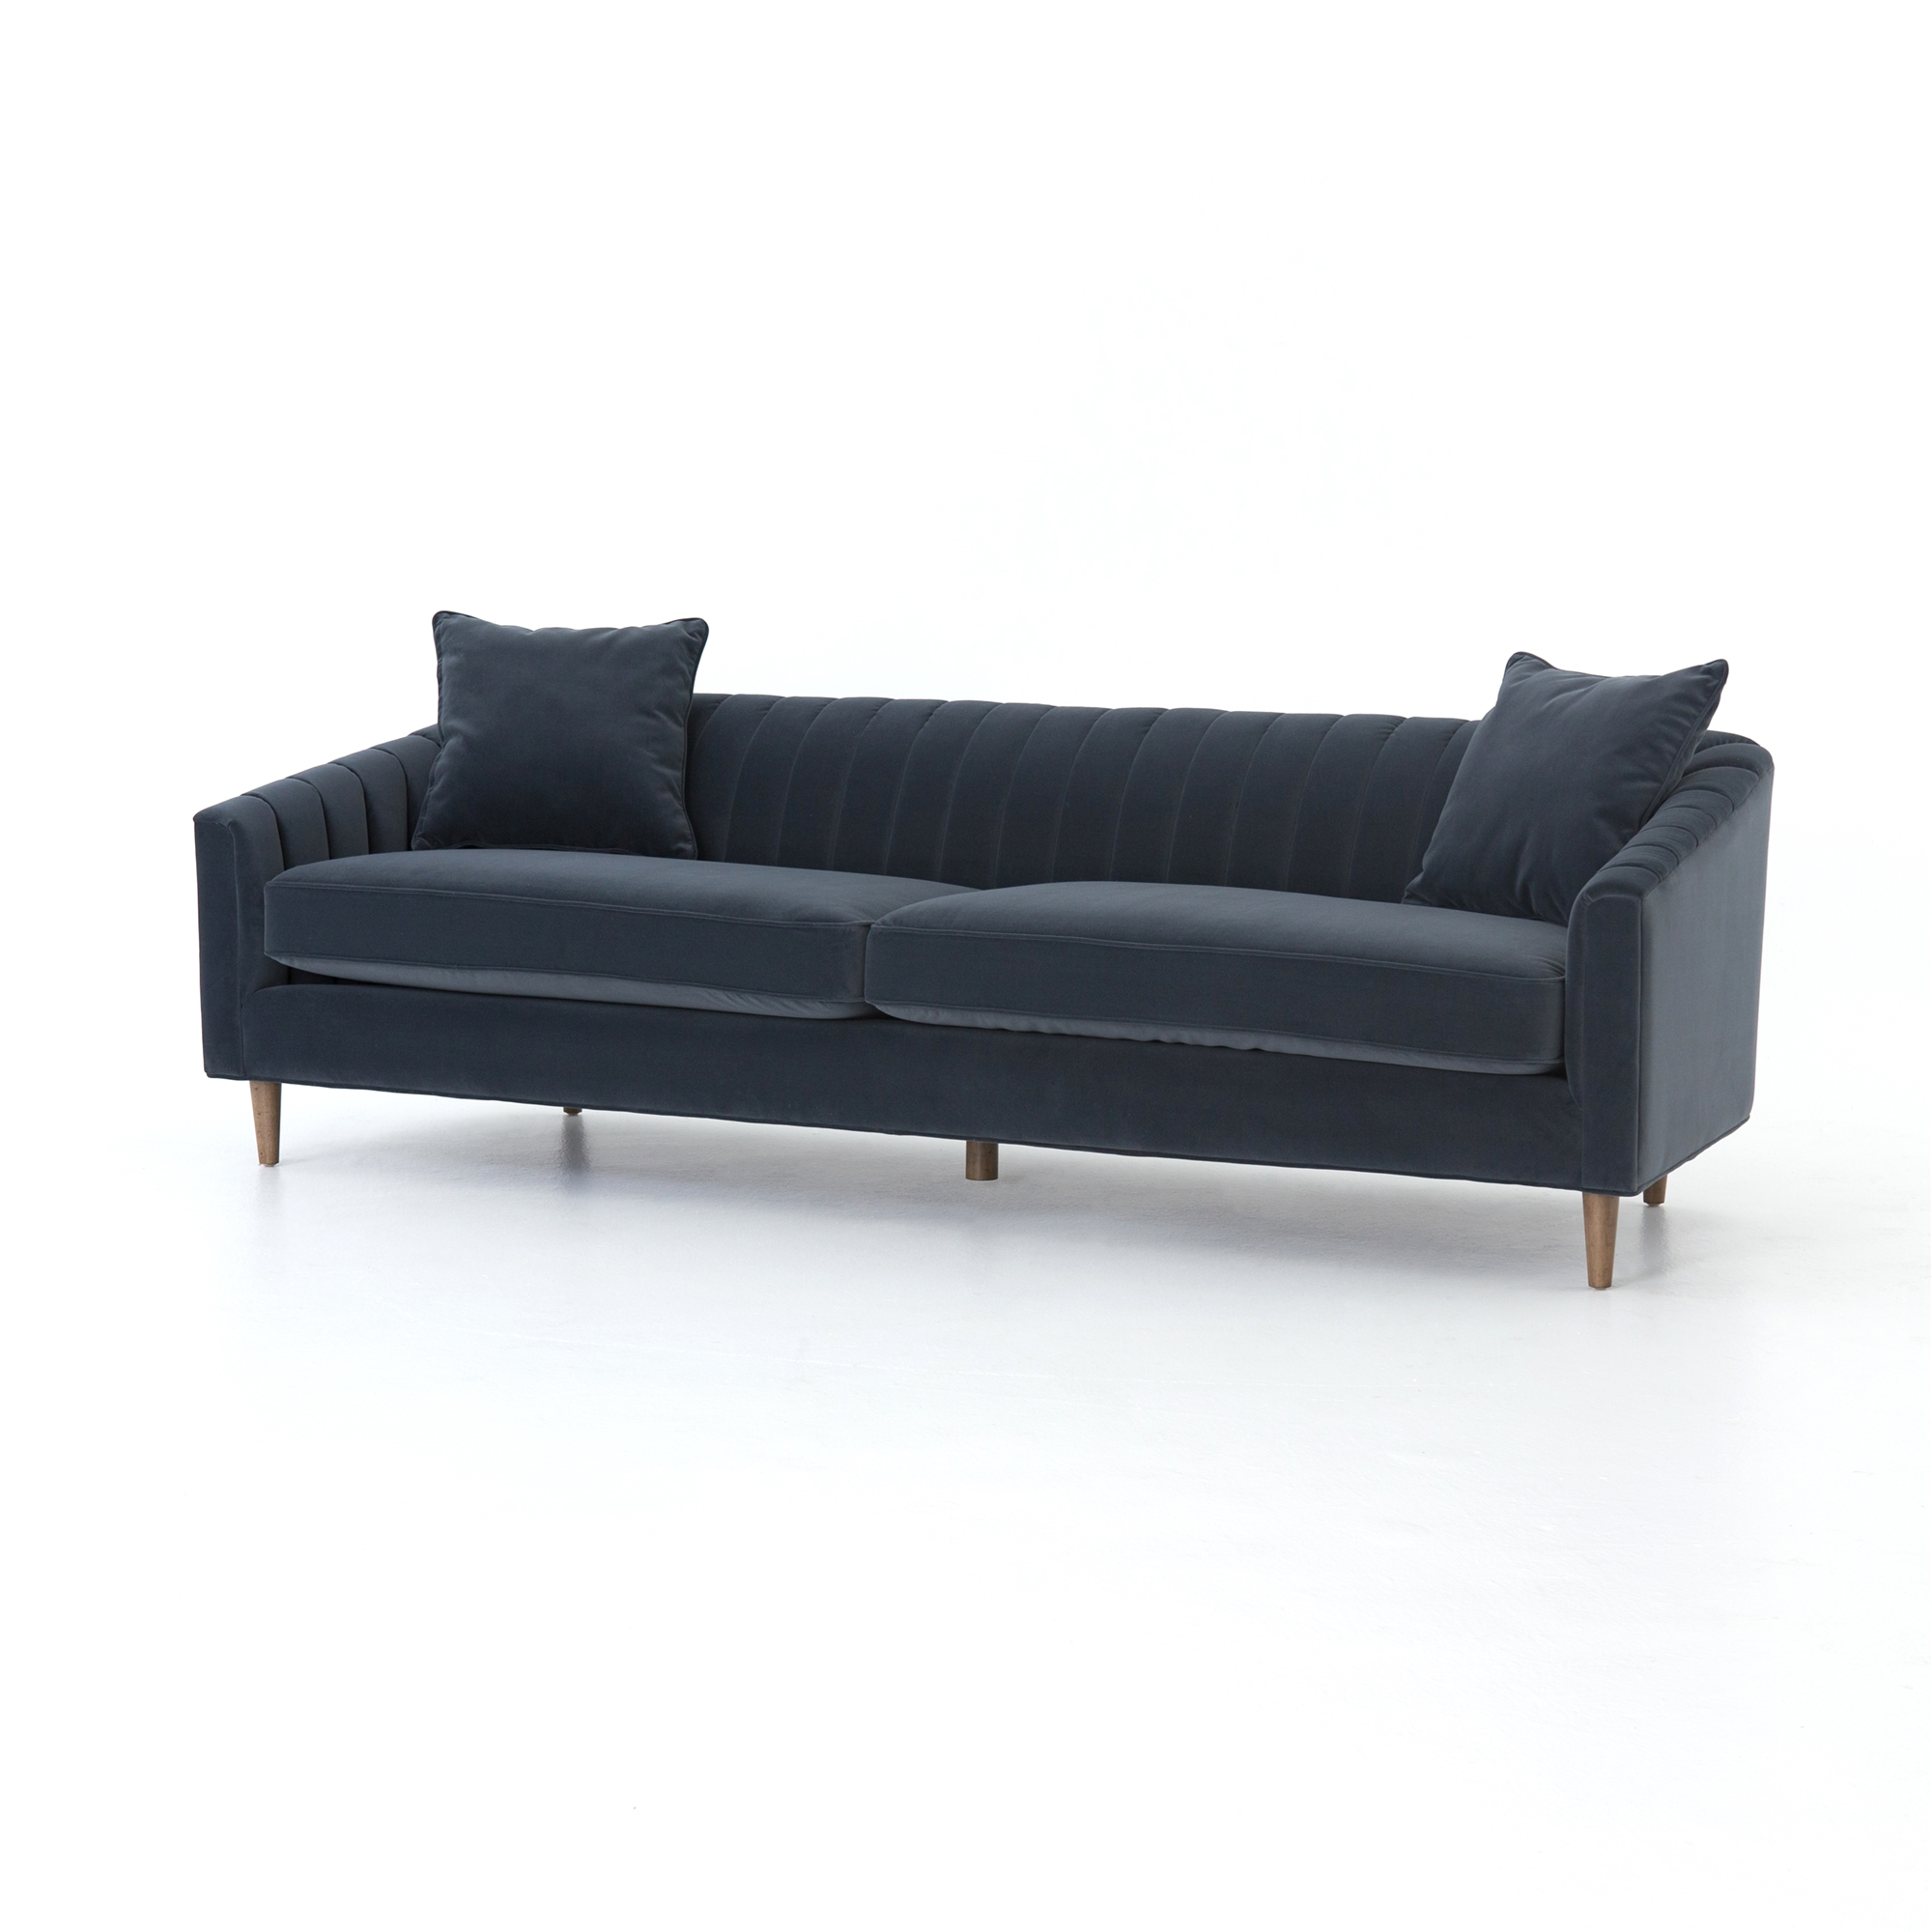 Made Sofa Velvet Kensington Eve Sofa 96